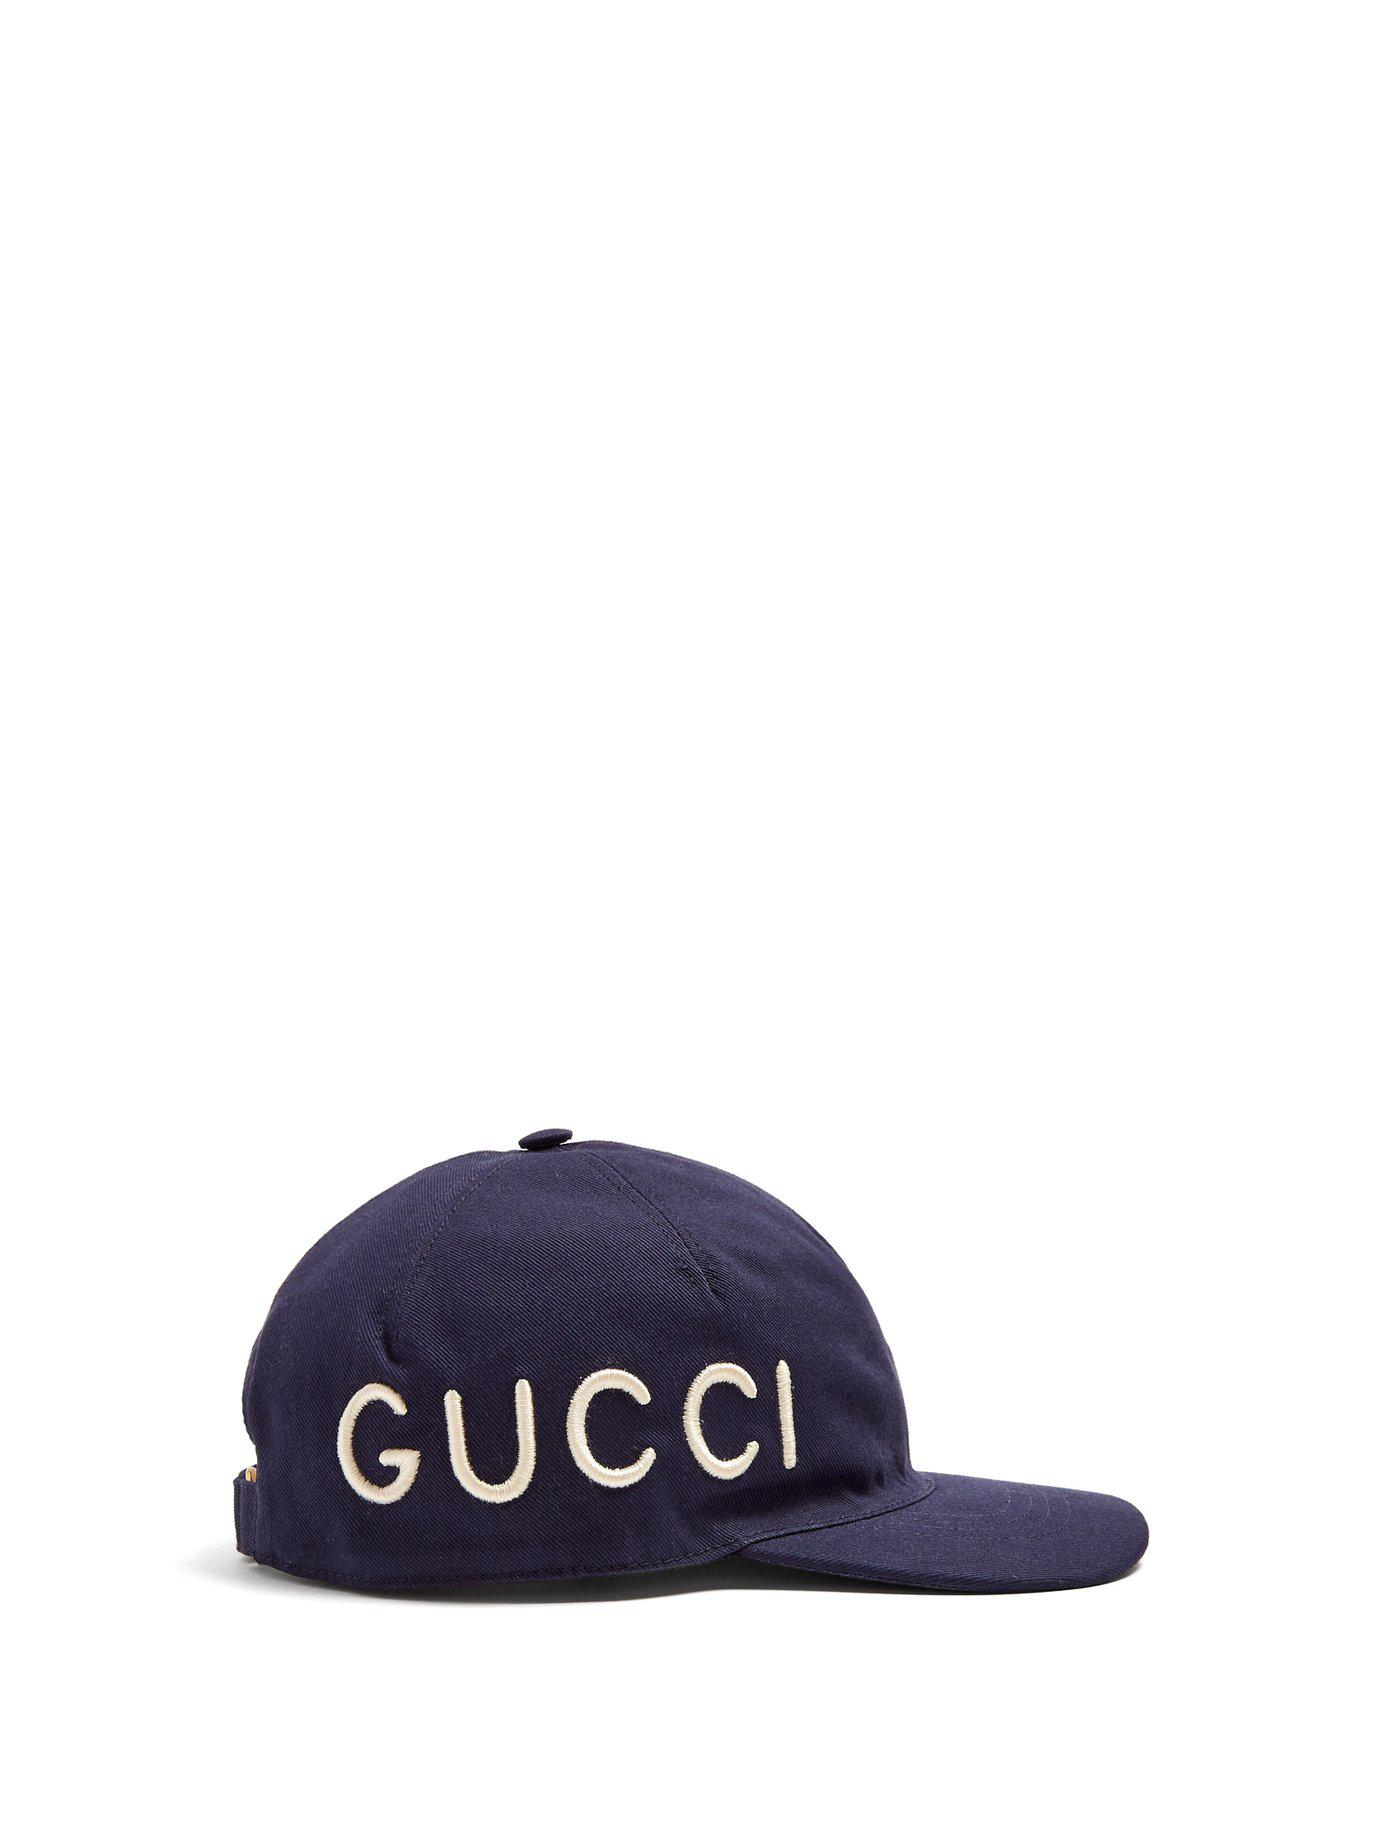 41759329ae5 Gucci - Blue Logo Embroidered Cotton Cap for Men - Lyst. View fullscreen